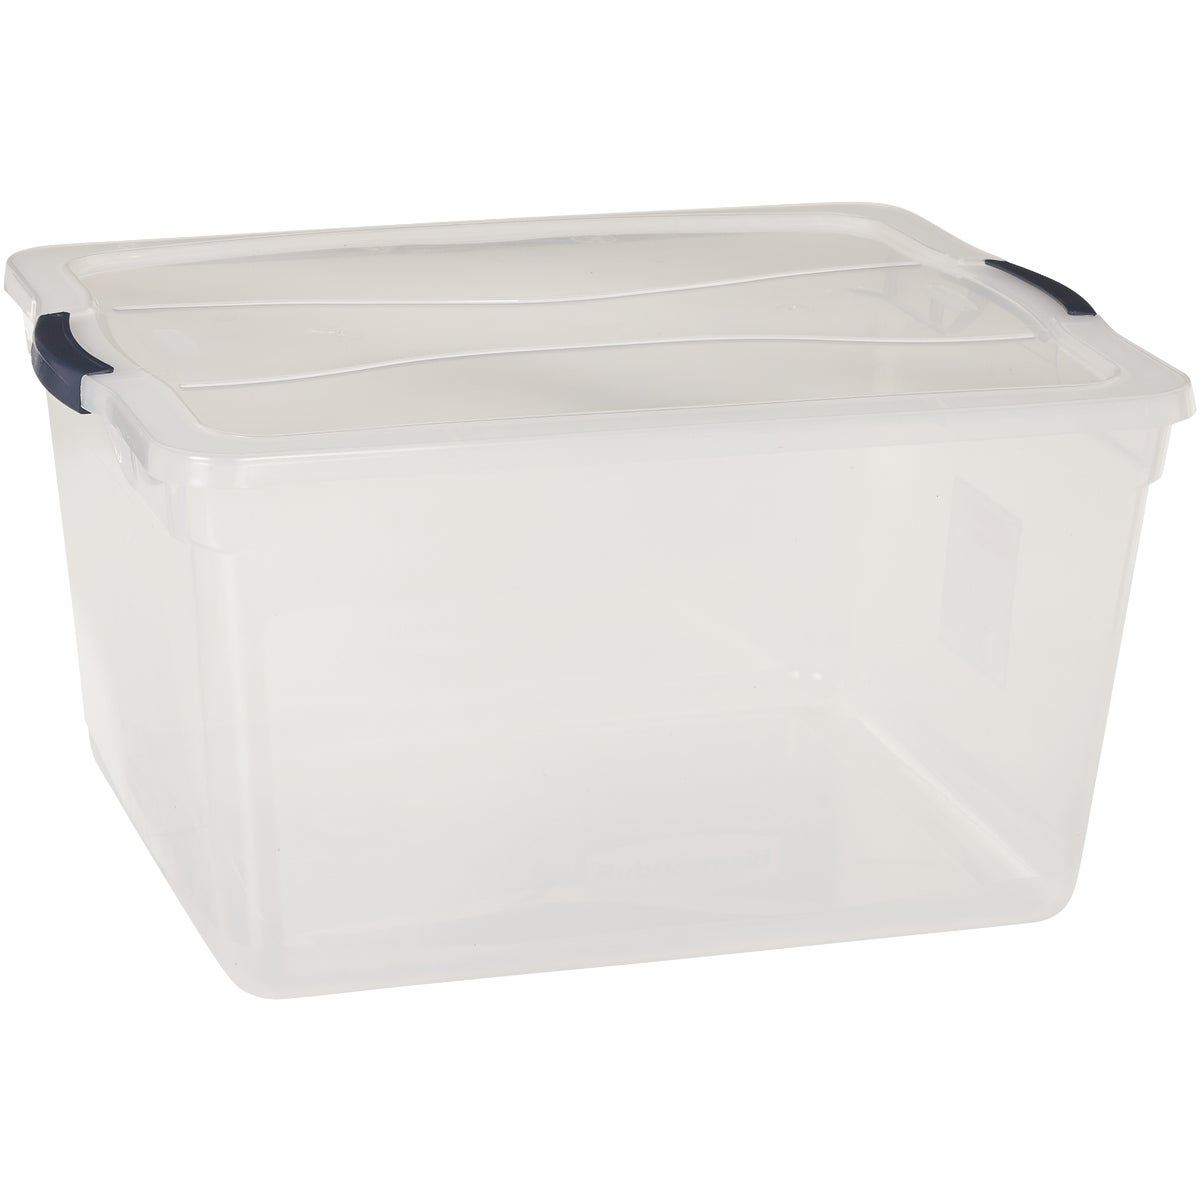 71QT LATCHING STORAGE - 3Q3200CLMCB by Rubbermaid Home